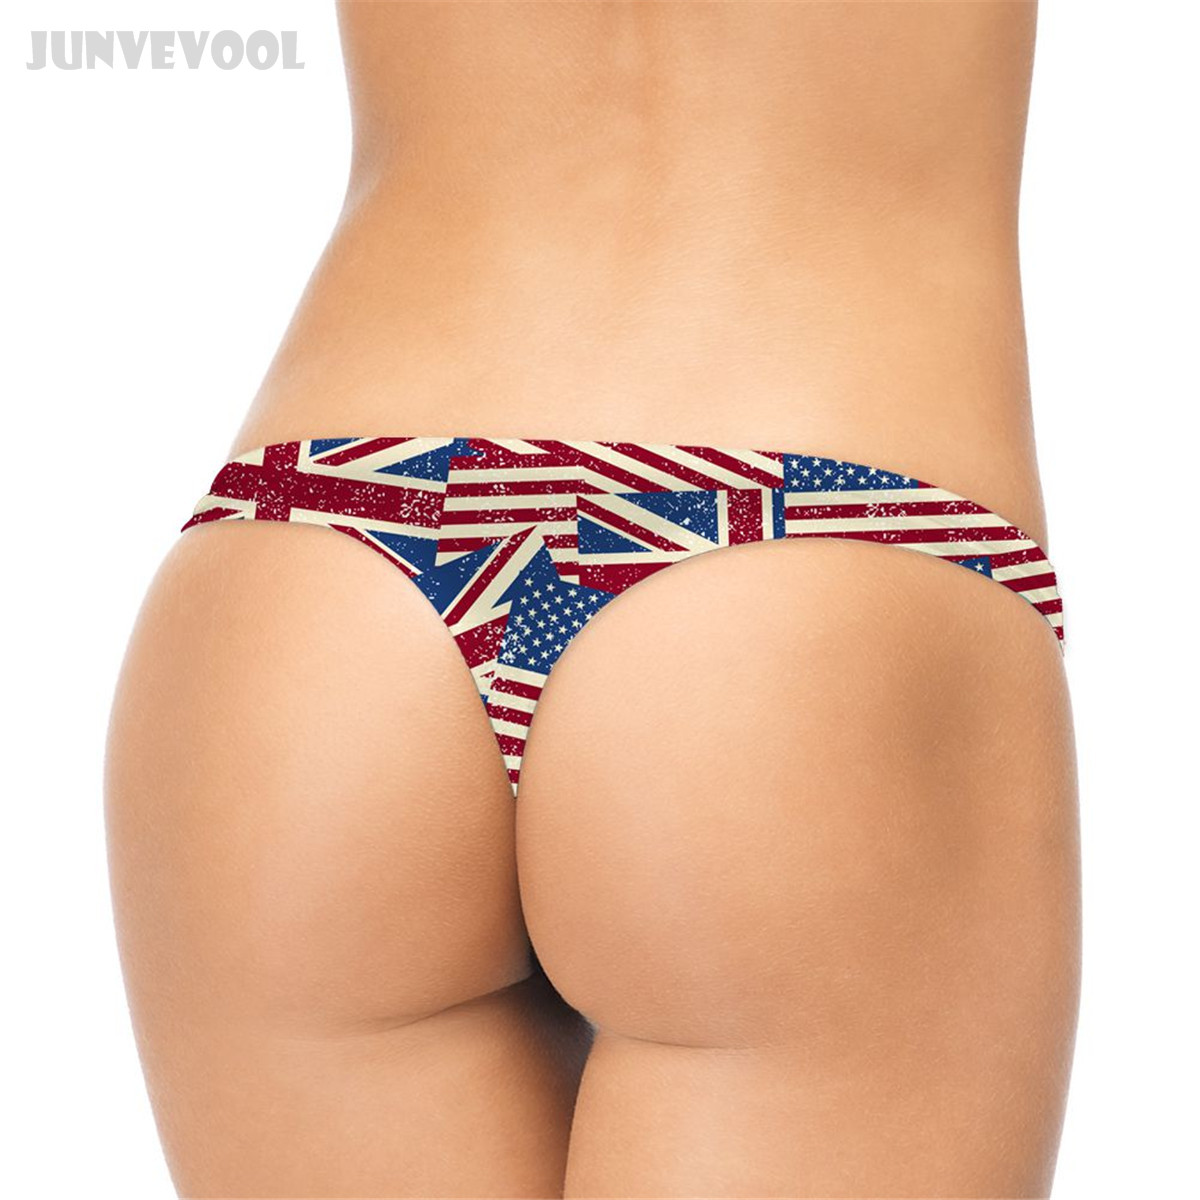 Sexy Women Bandage Stripe Usa Flag Print High Cut Bodysuit Thong Swimwear Pole Dance Wear Erotic Lingerie Sexy Jumpsuit F48 Luggage & Bags